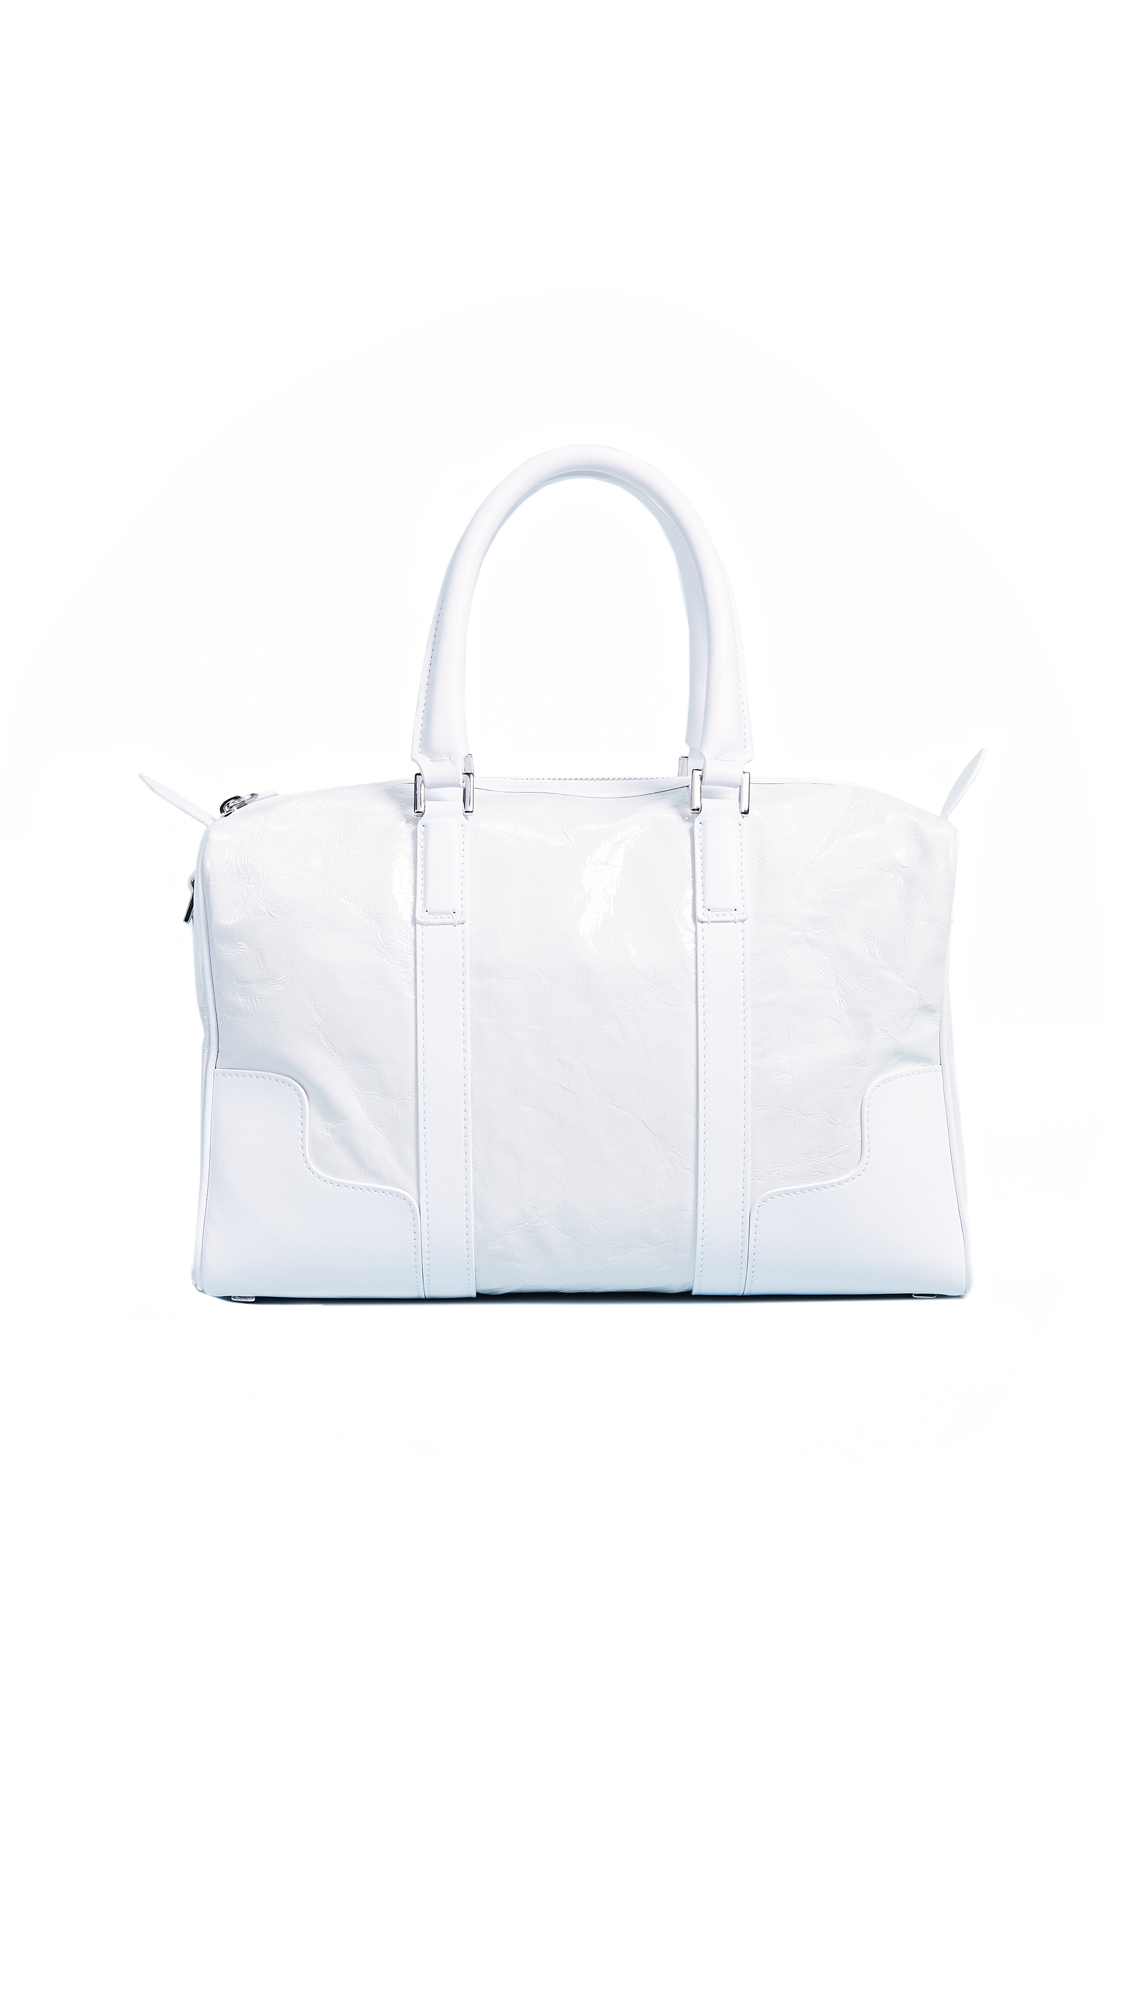 Tibi Mercredi Bag - White